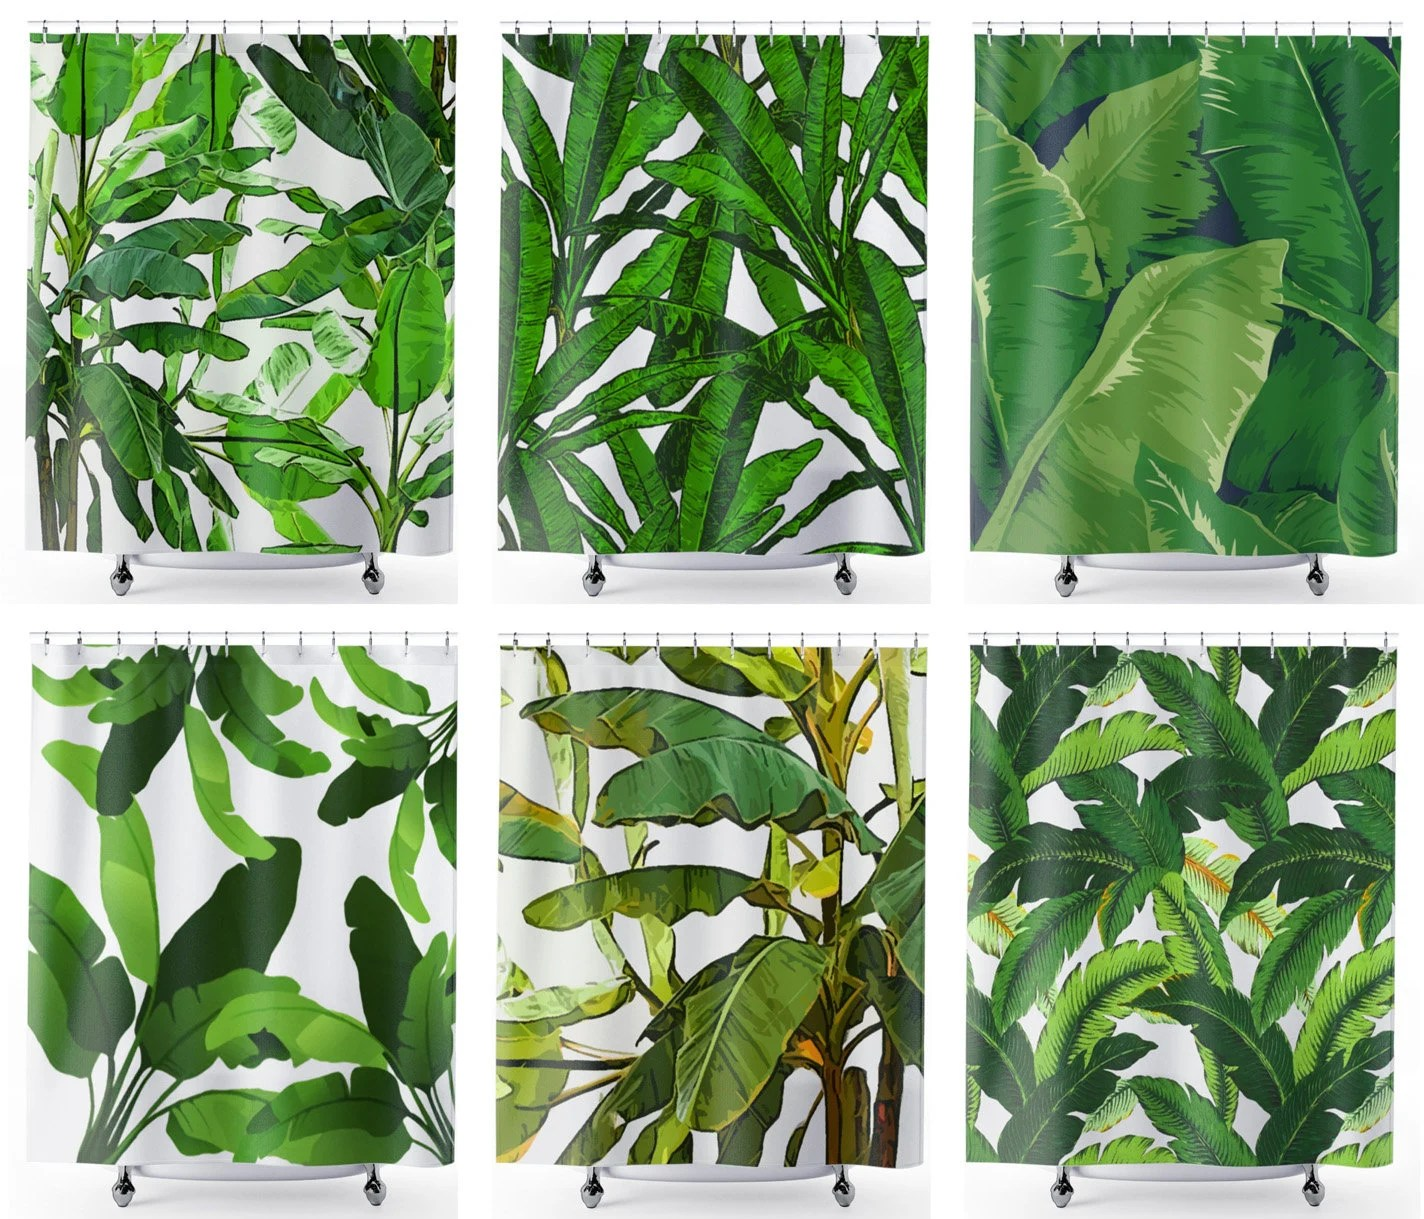 Banana Leaf Shower Curtain Custom Size Shower Curtain Extra Long Wide Tall Length Height Width Narrow Stall Small Clawfoot Tub 36 54 70 78 80 84 90 96 100 108 Inch